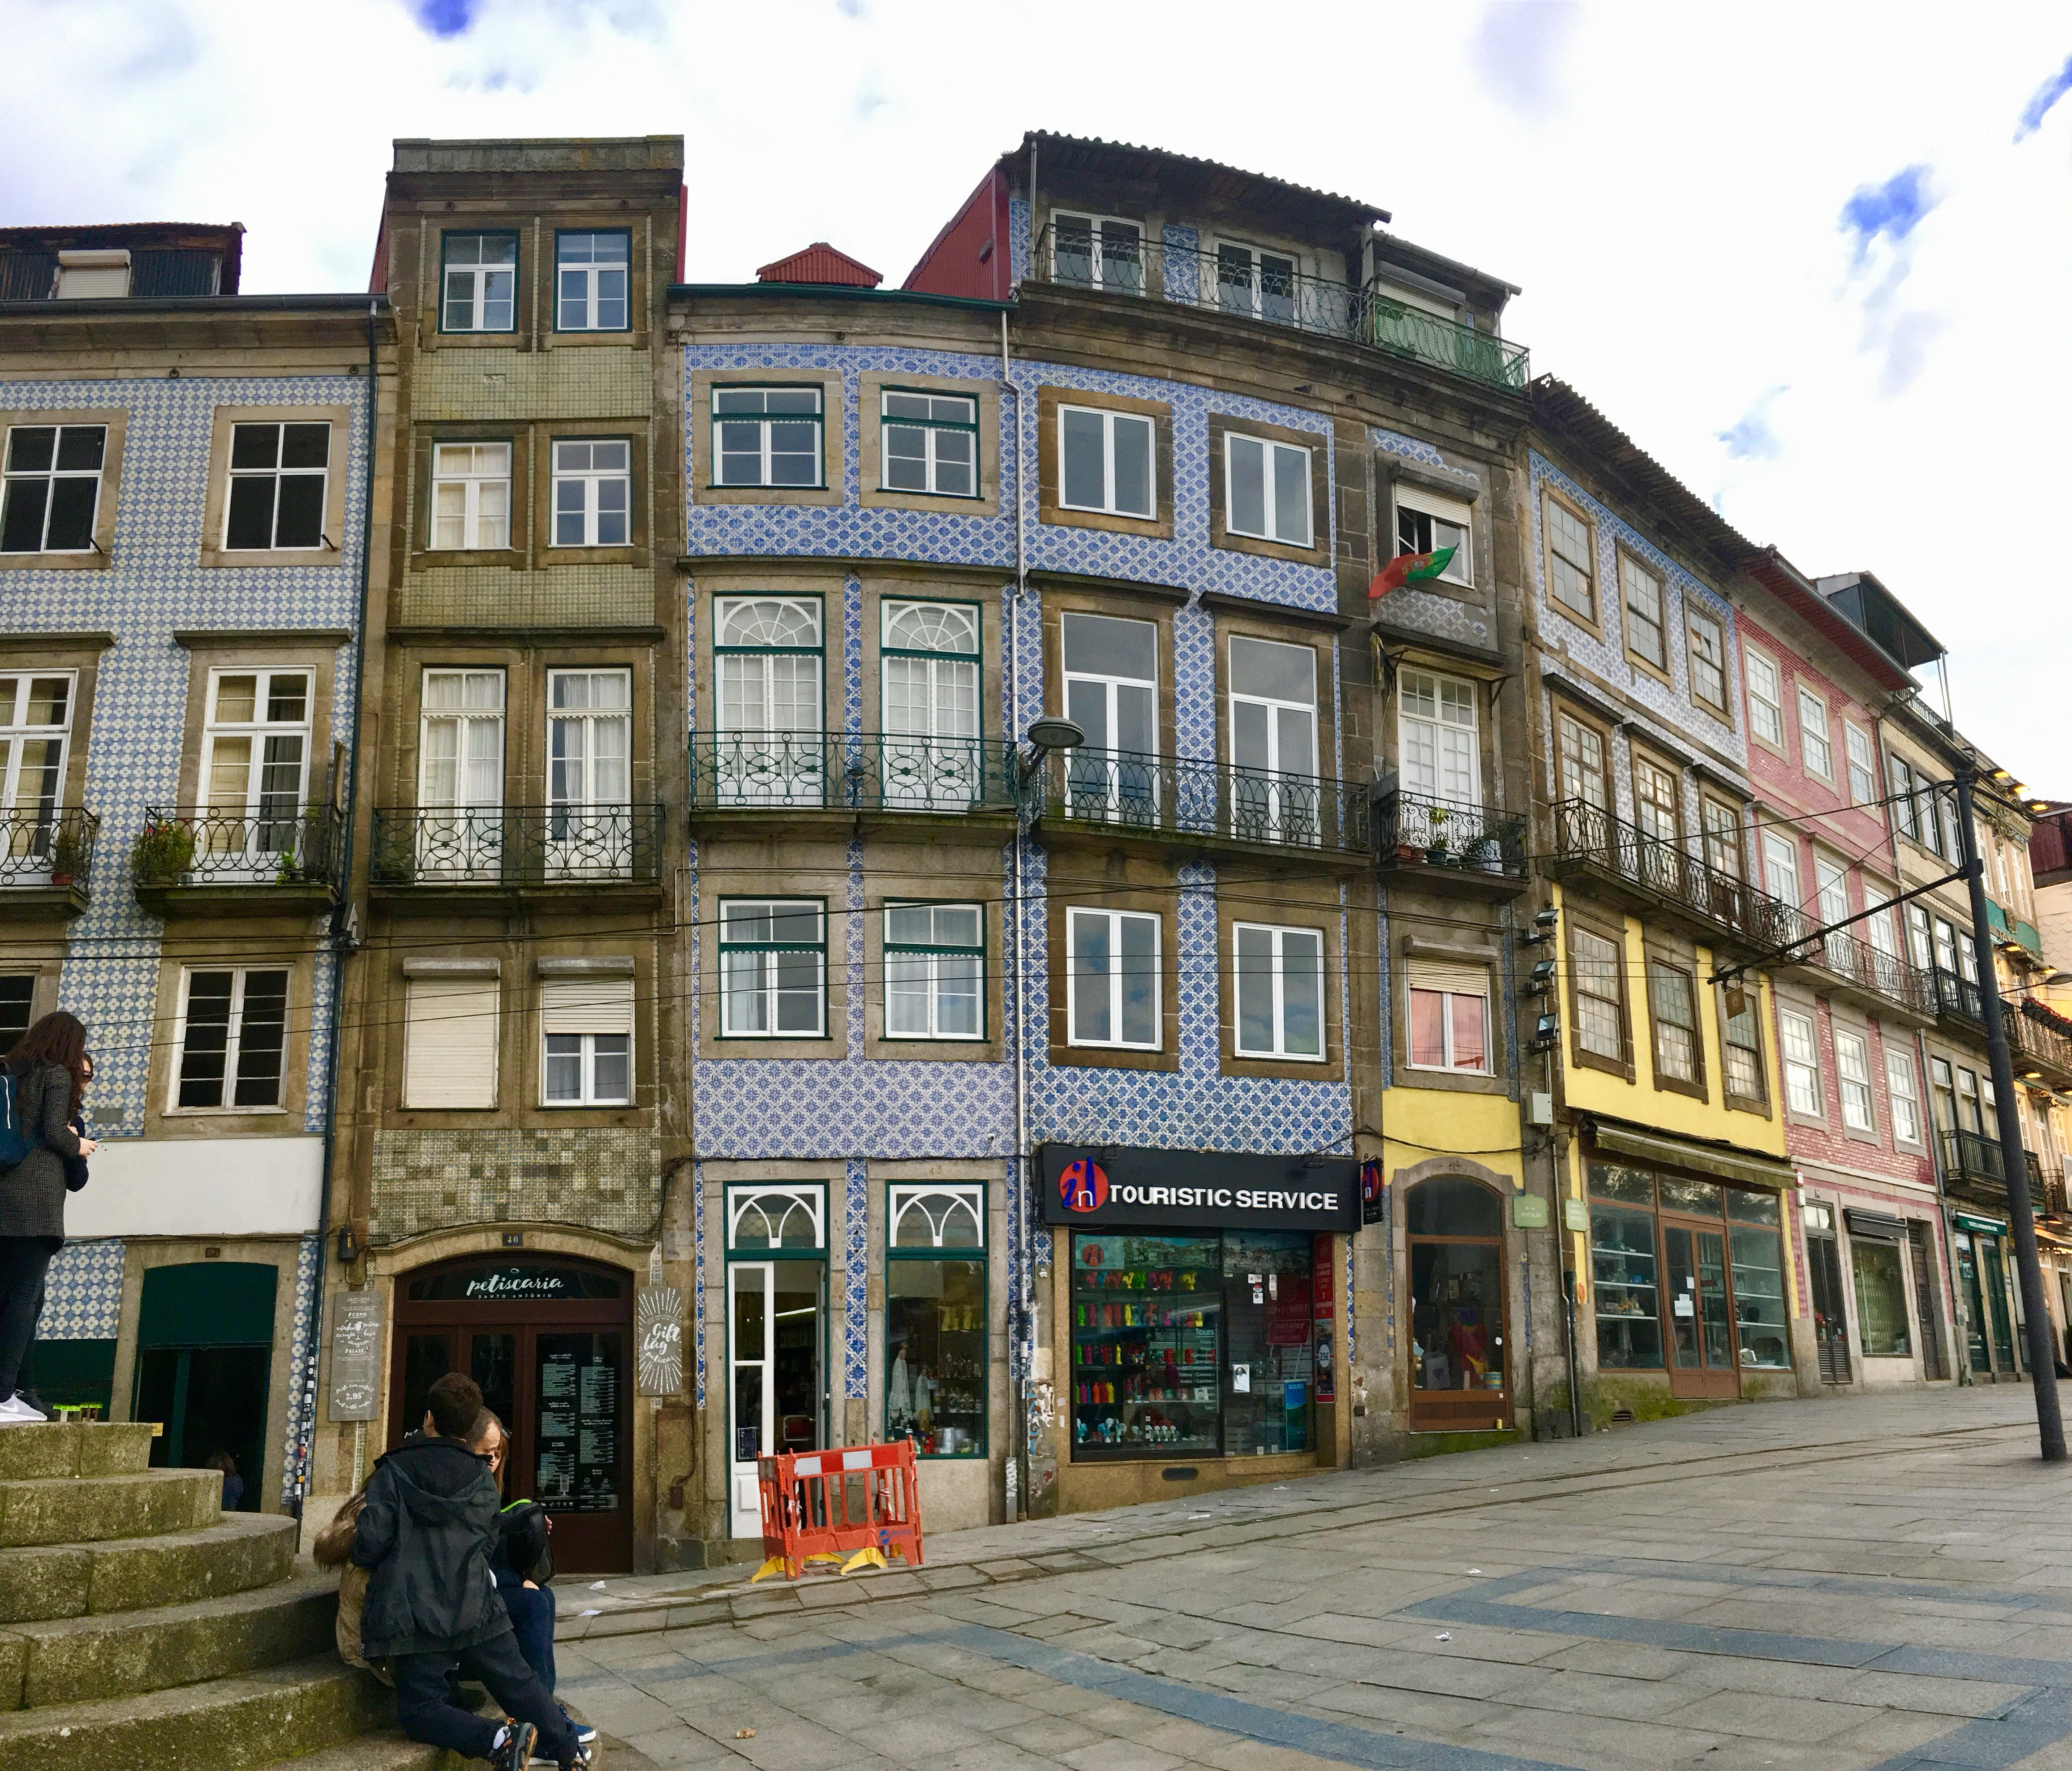 Portugal itinerary 2 days in porto